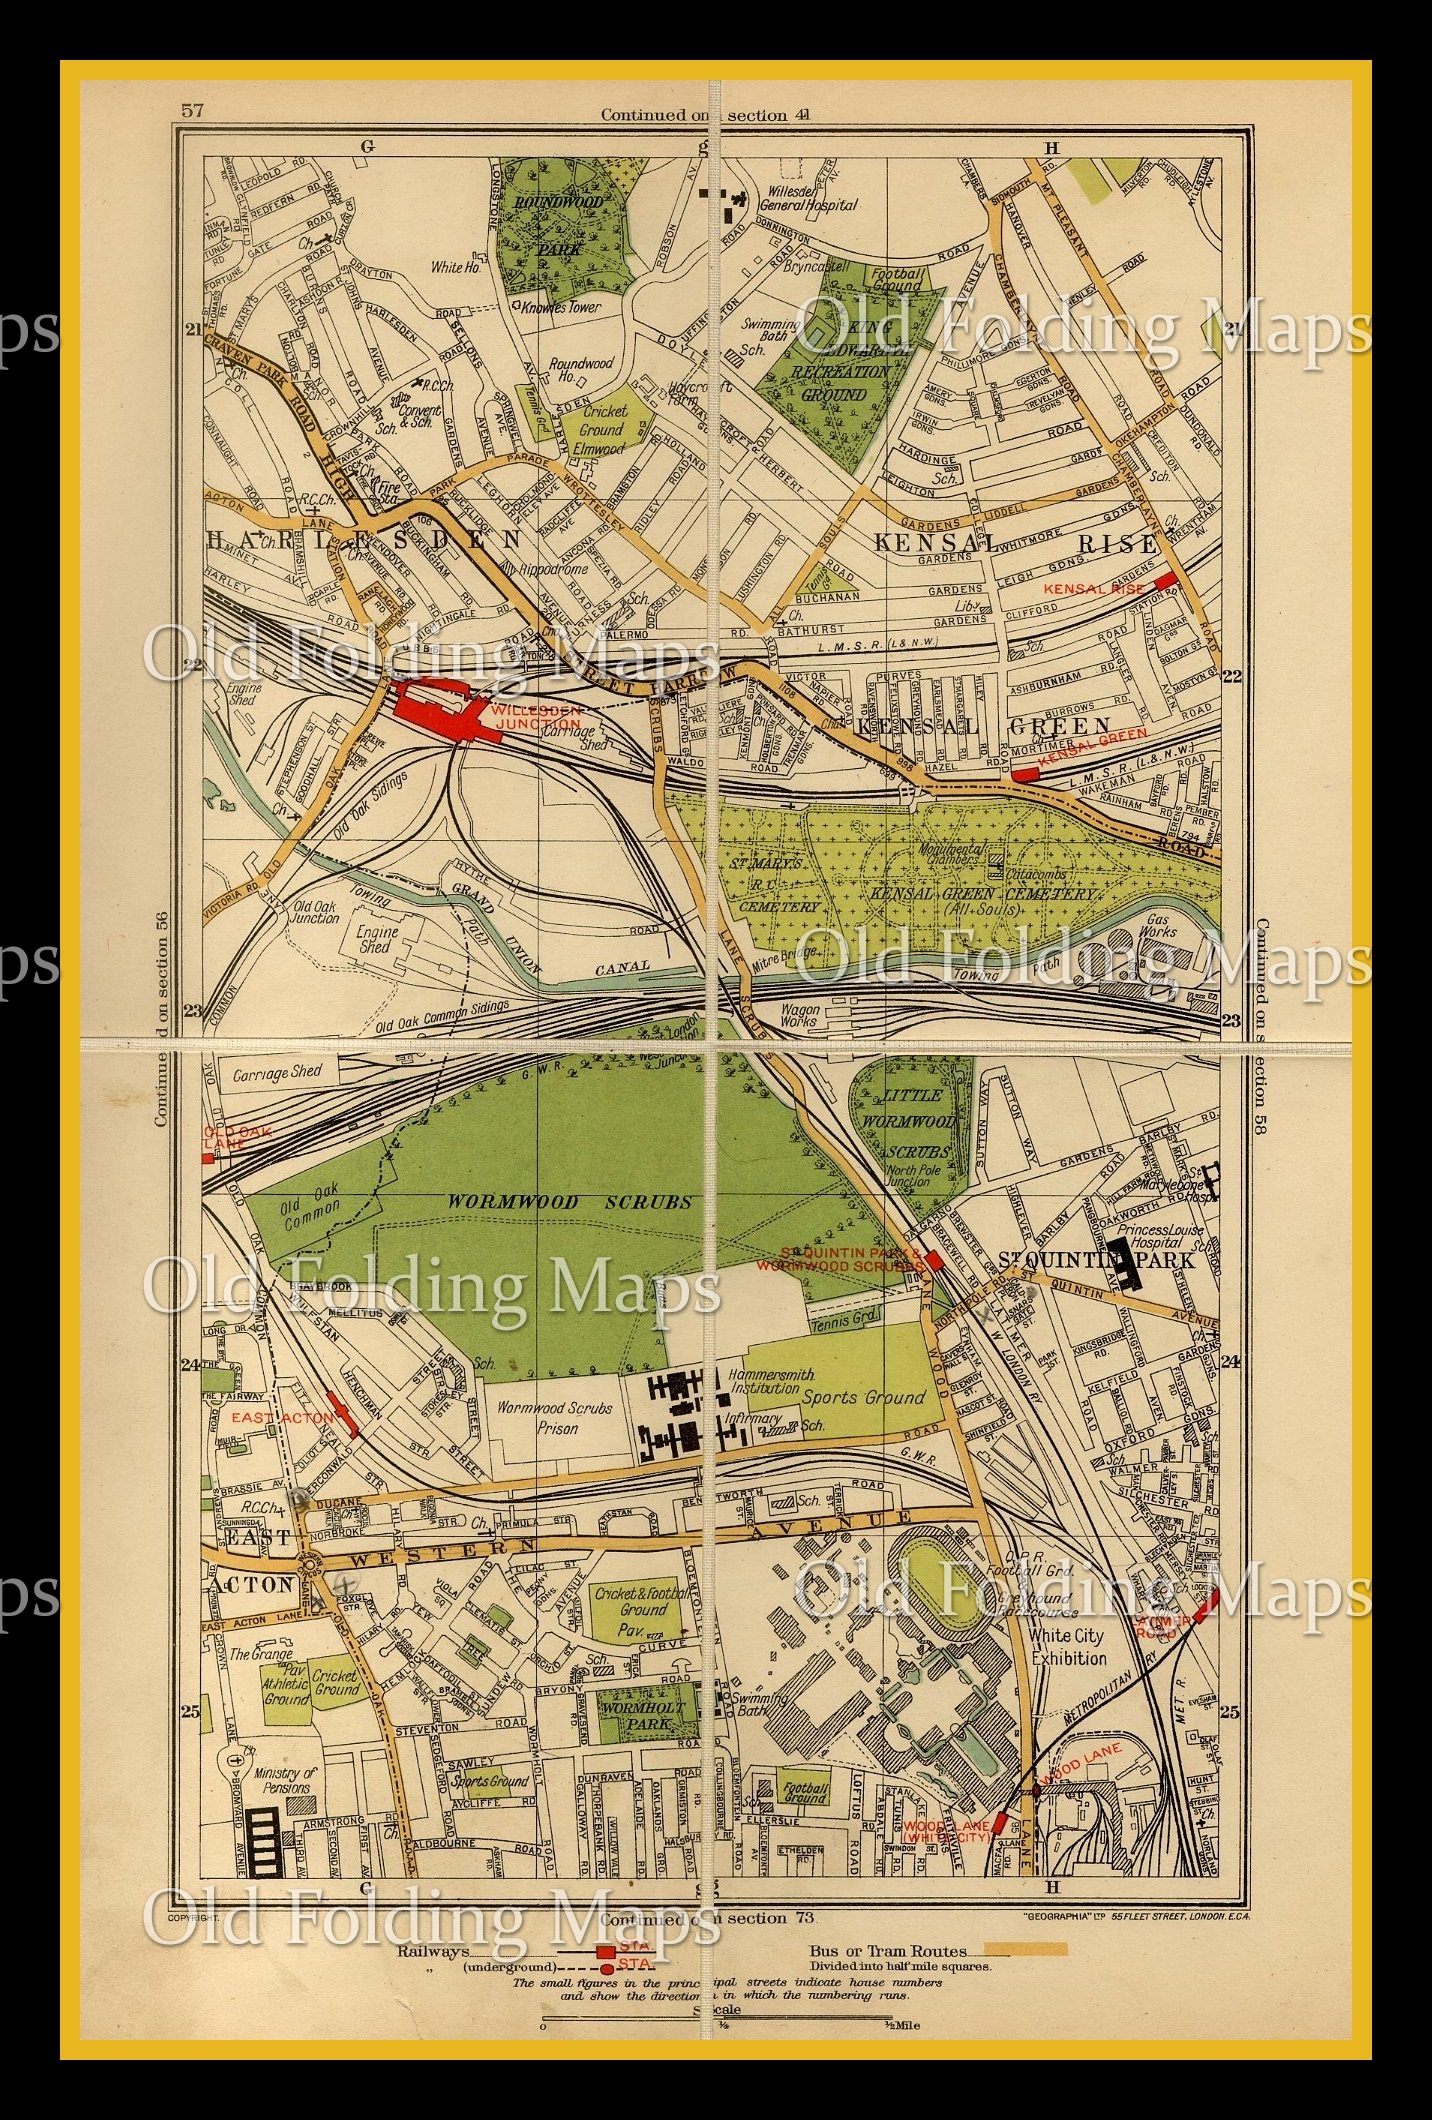 Old Street London Map.Old London Map Of Harlesden St Quintin Park Acton Circa 1930 S